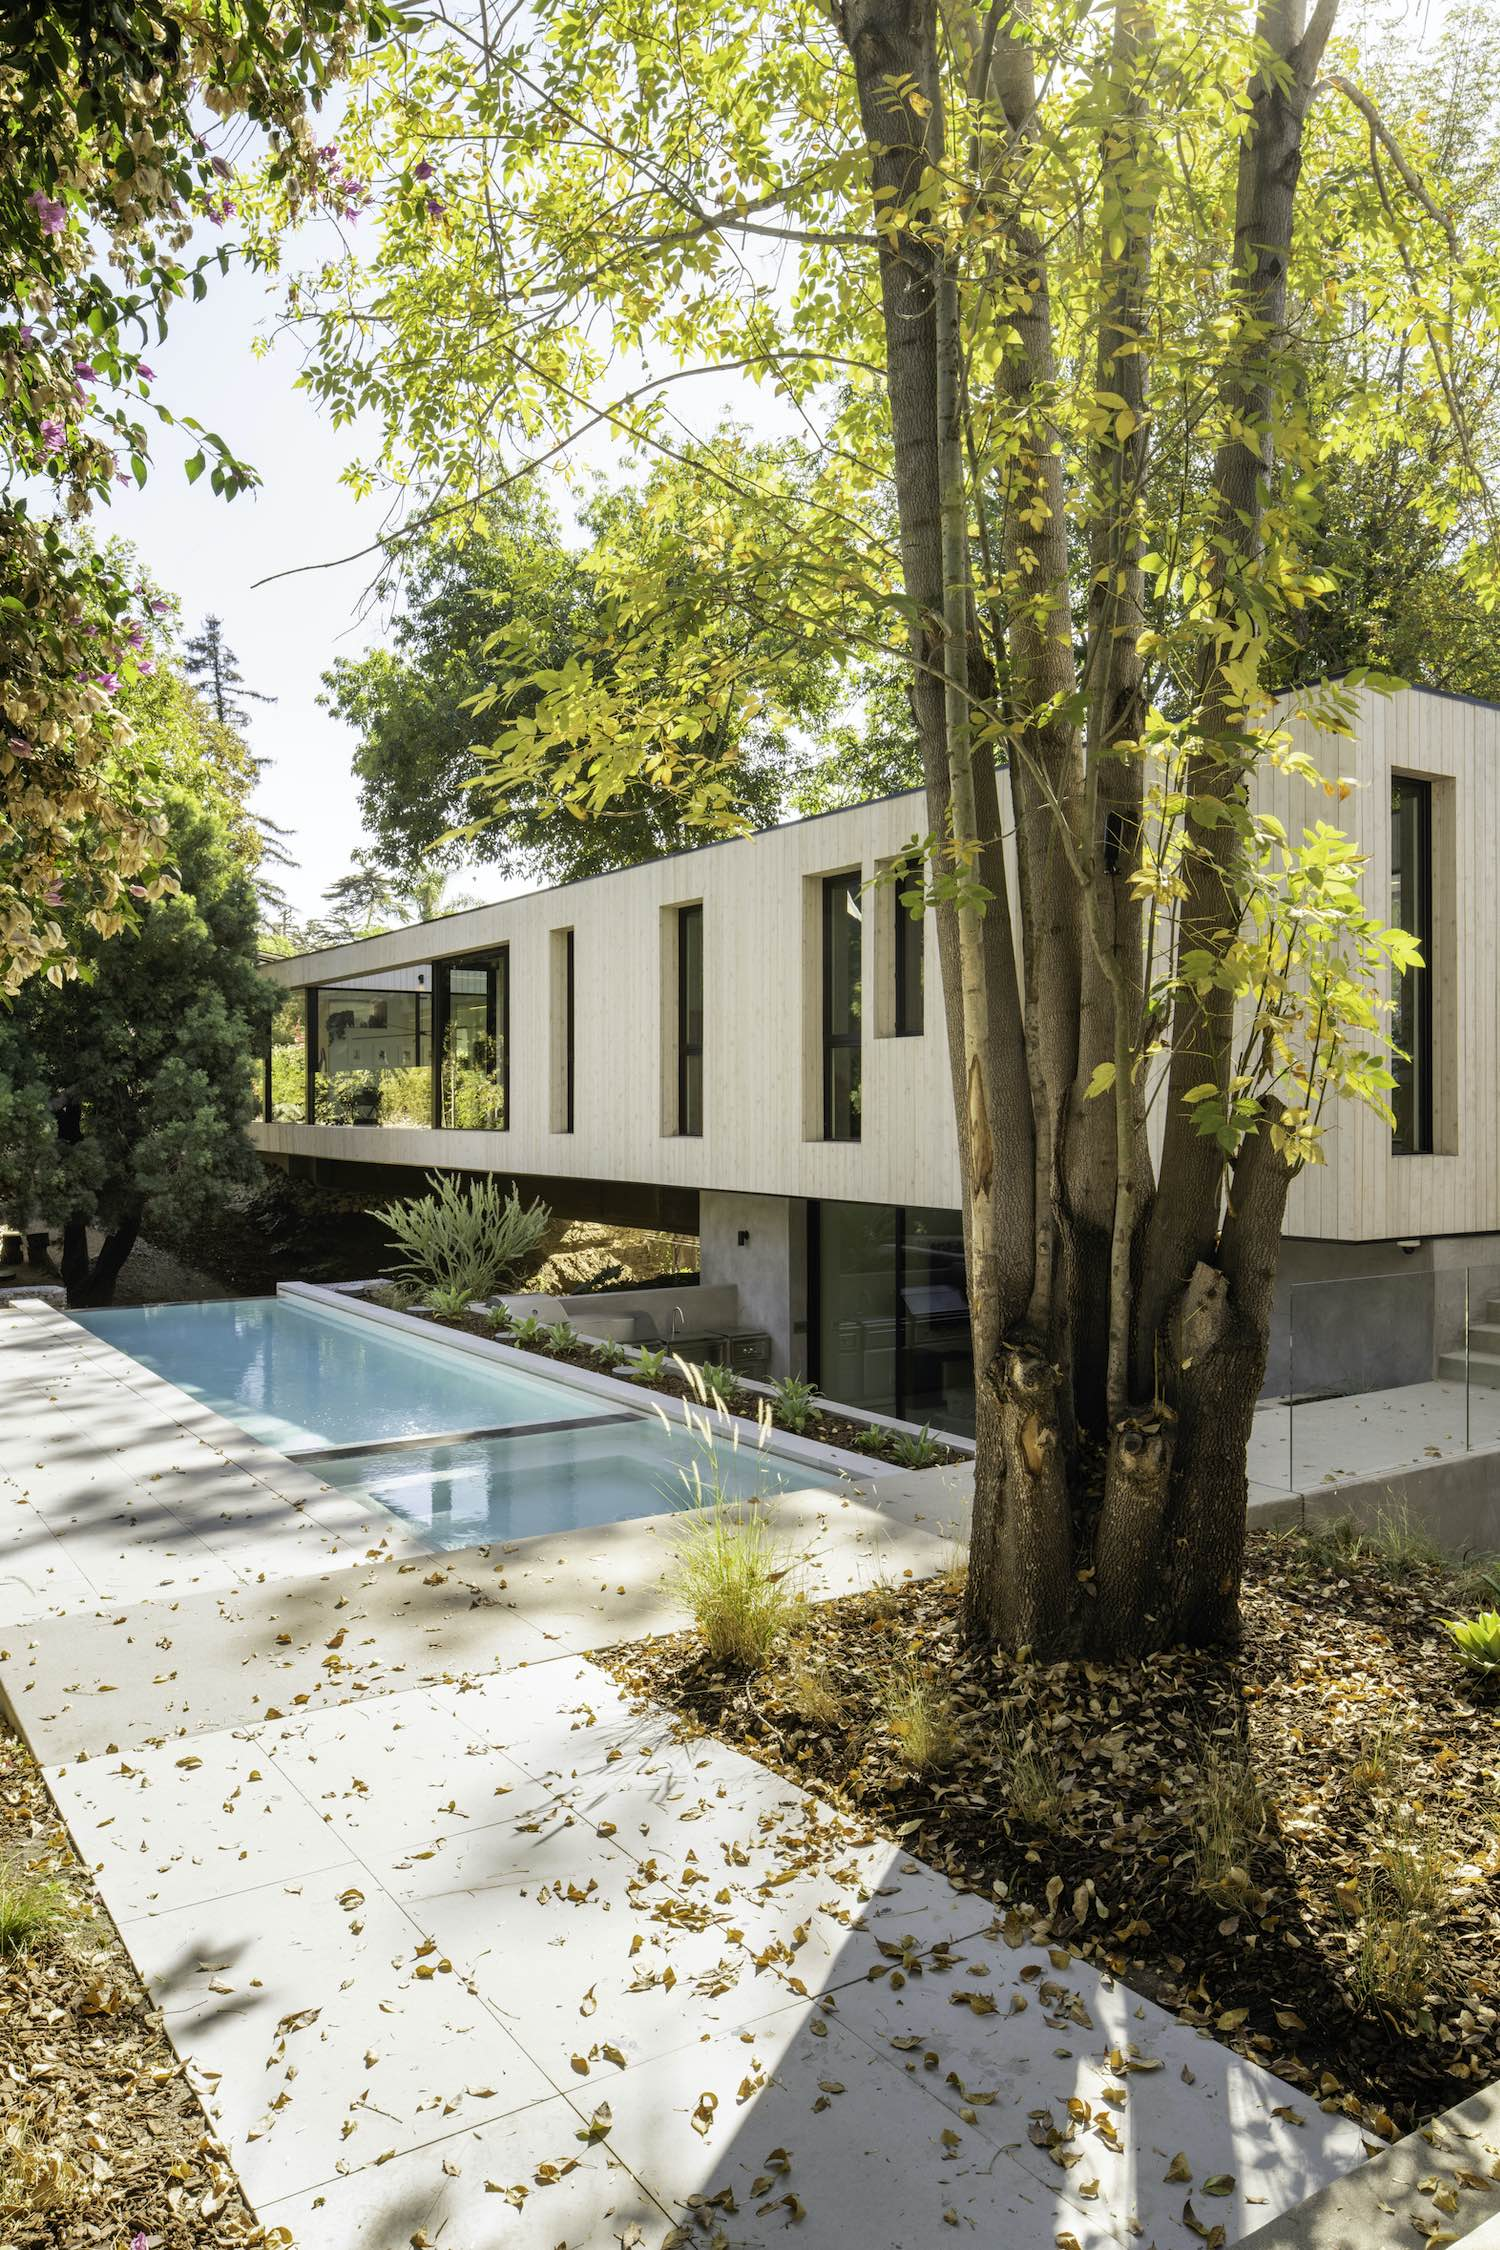 house with pool surrounded with trees